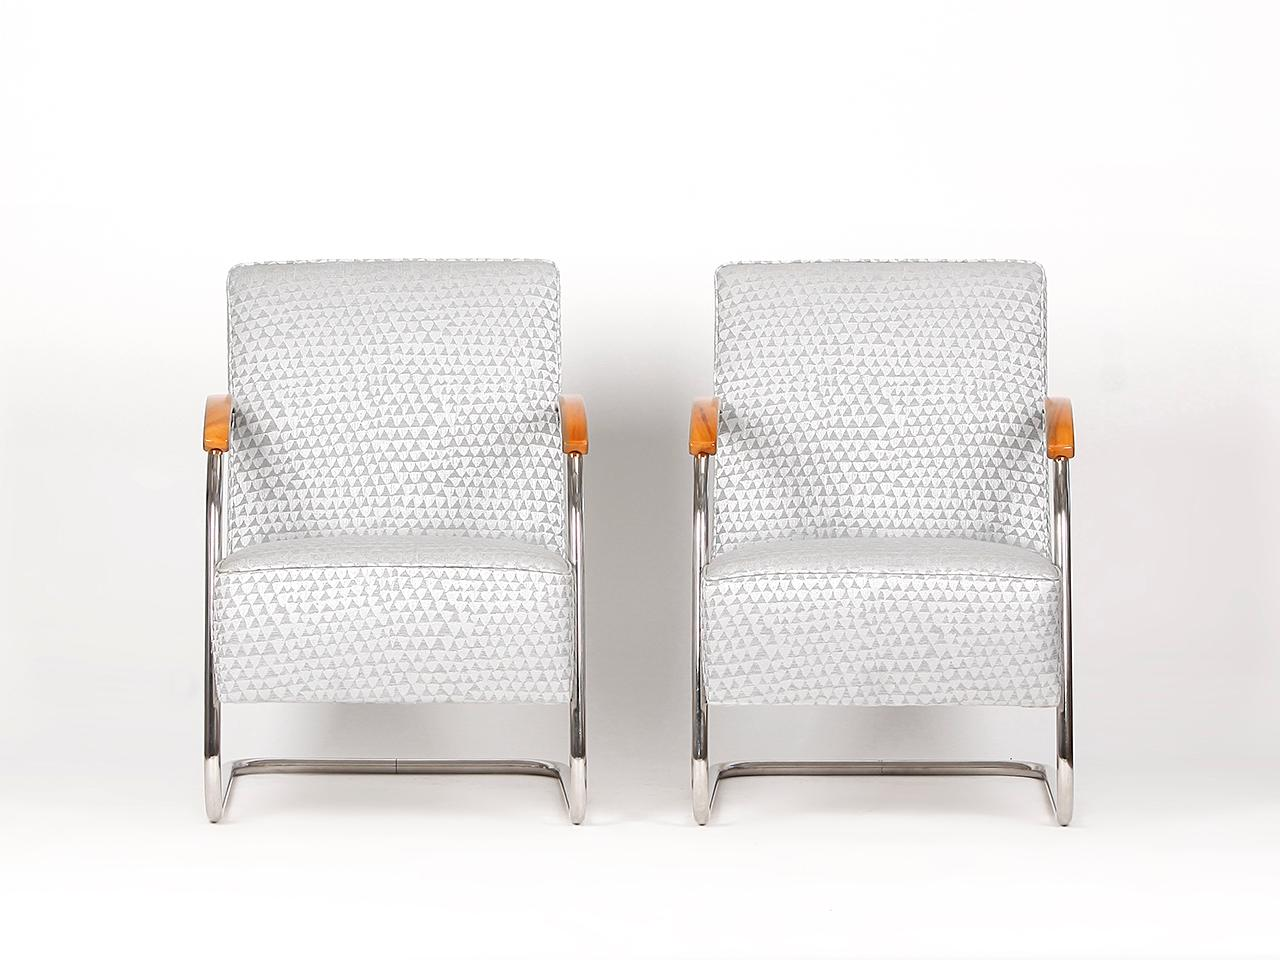 Tubular Steel Armchairs From Mücke Melder 1930s Set Of Two For Sale At 1stdibs